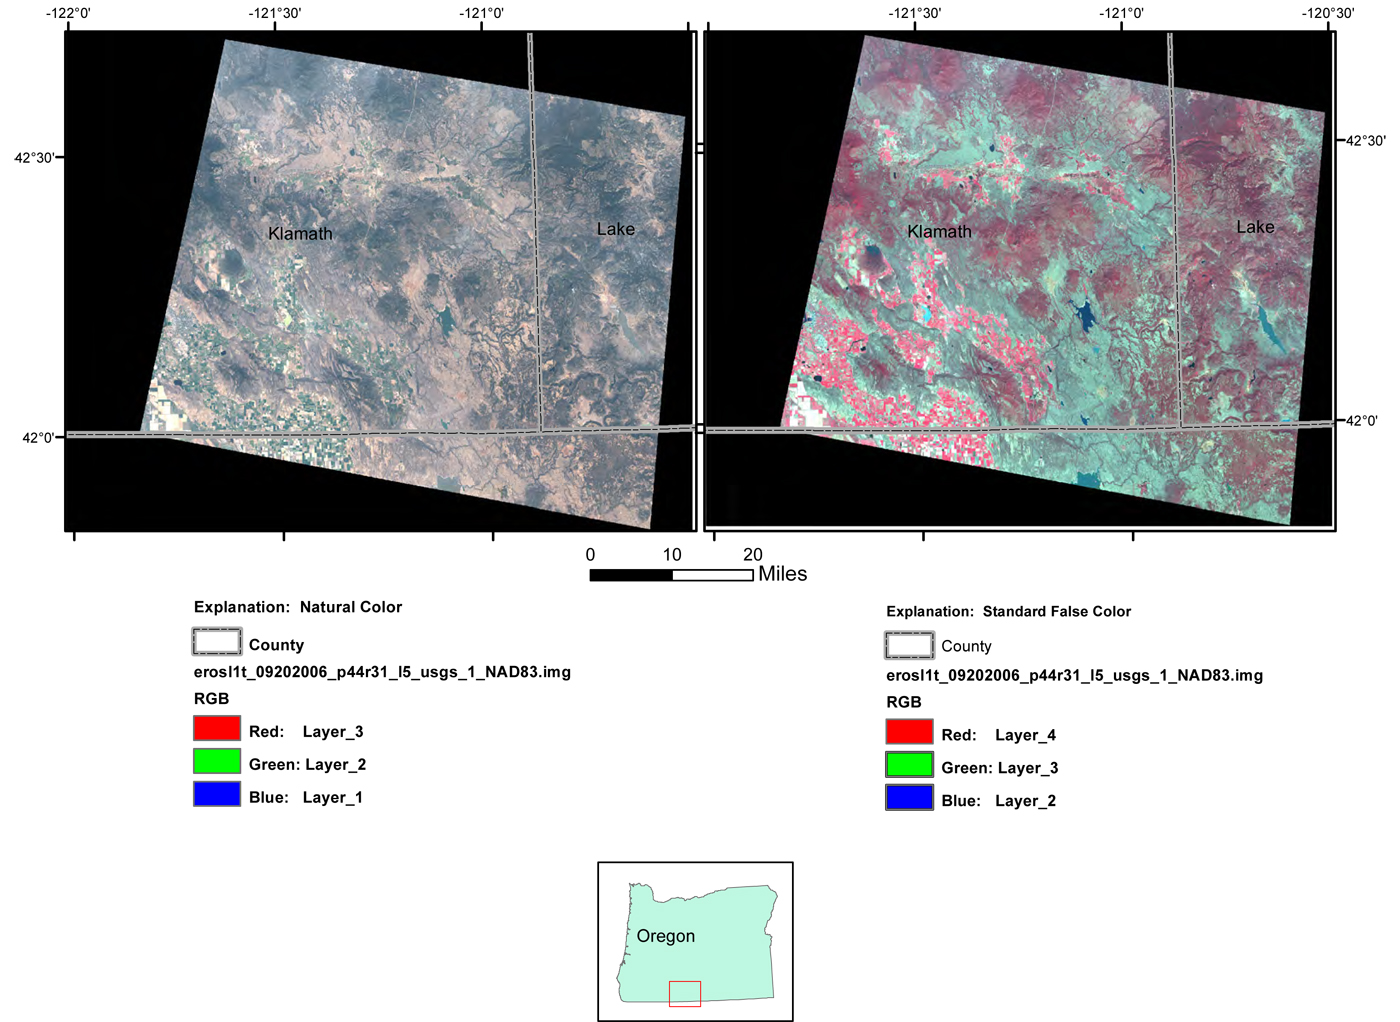 This is a compressed and resampled version of the Landsat image.